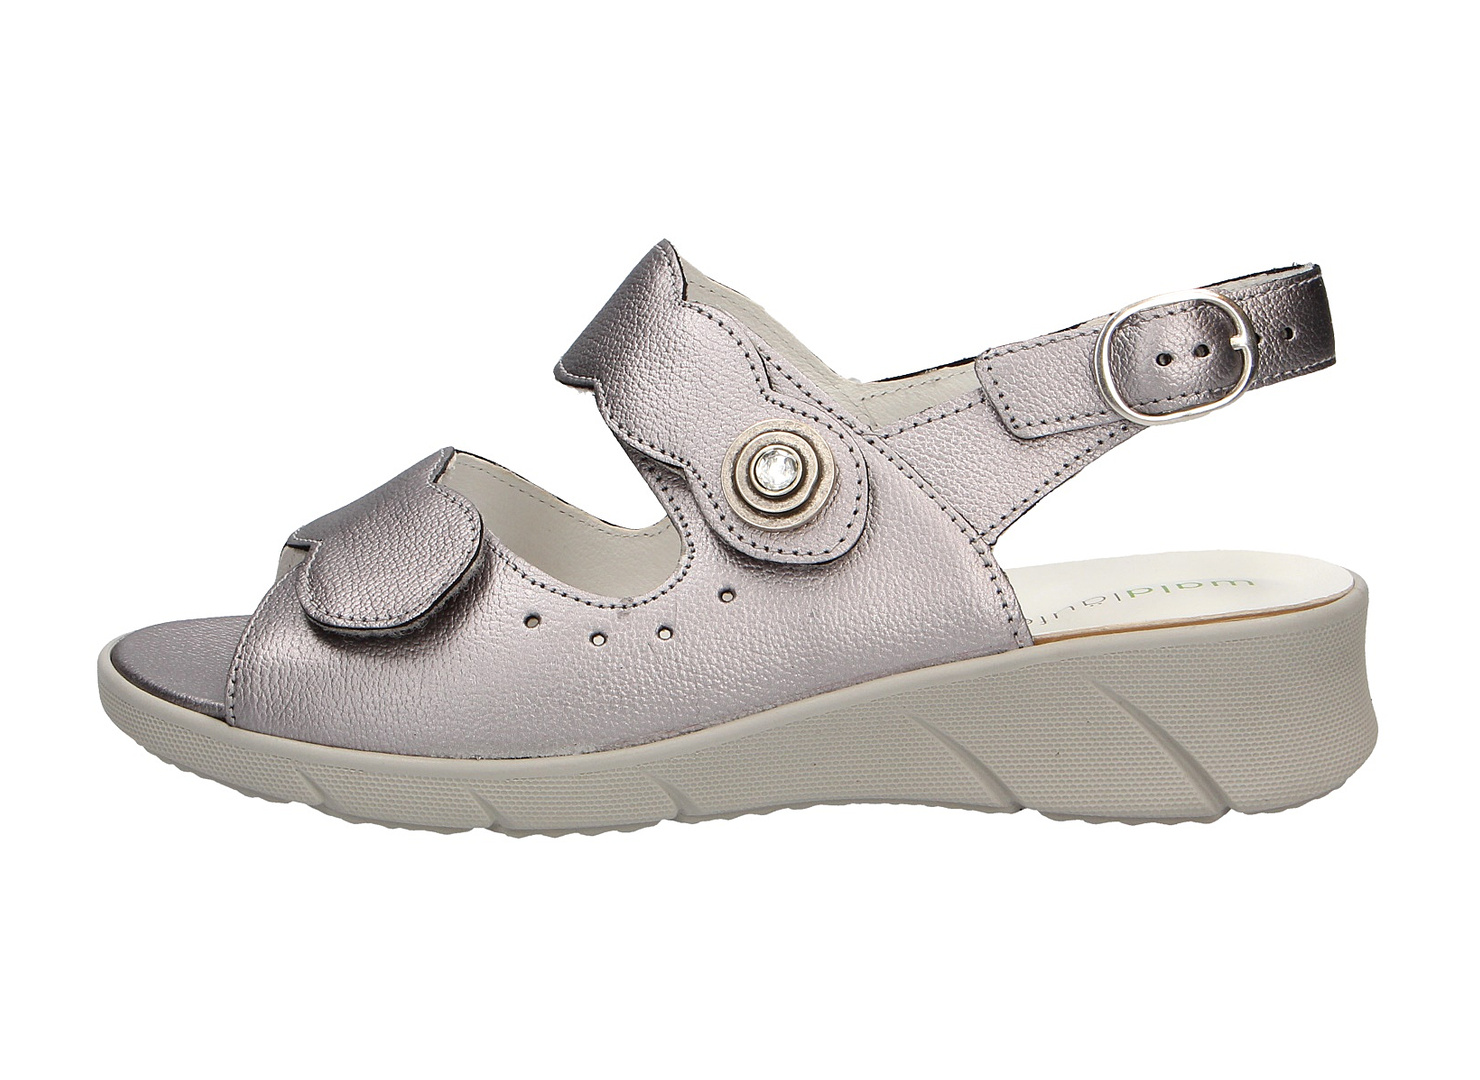 on sale 91ecc fbb47 Waldläufer Damen Sandale | Sandalen | Damen | Waldläufer ...